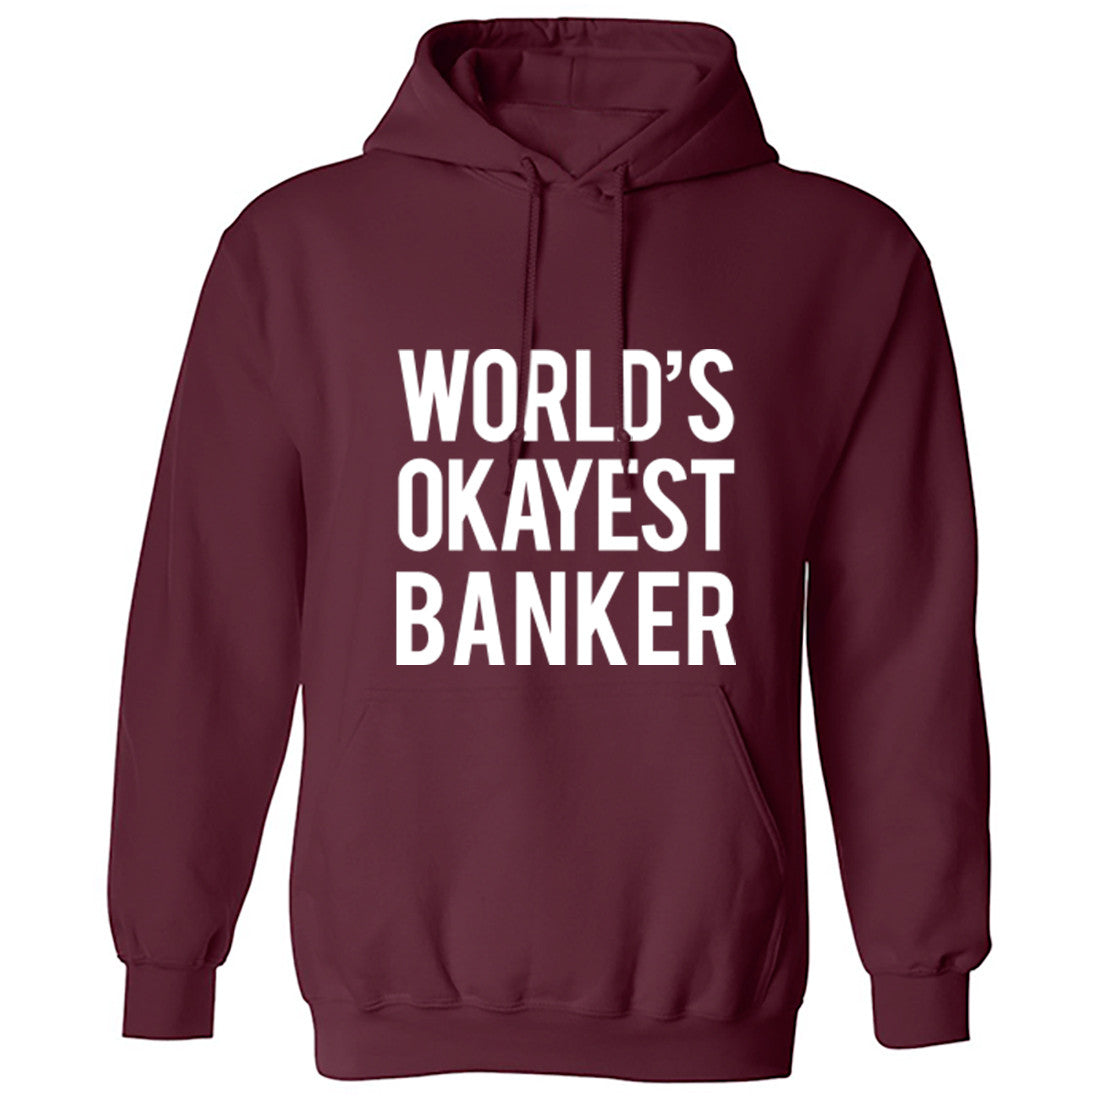 Worlds Okayest Banker Unisex Hoodie K0495 - Illustrated Identity Ltd.